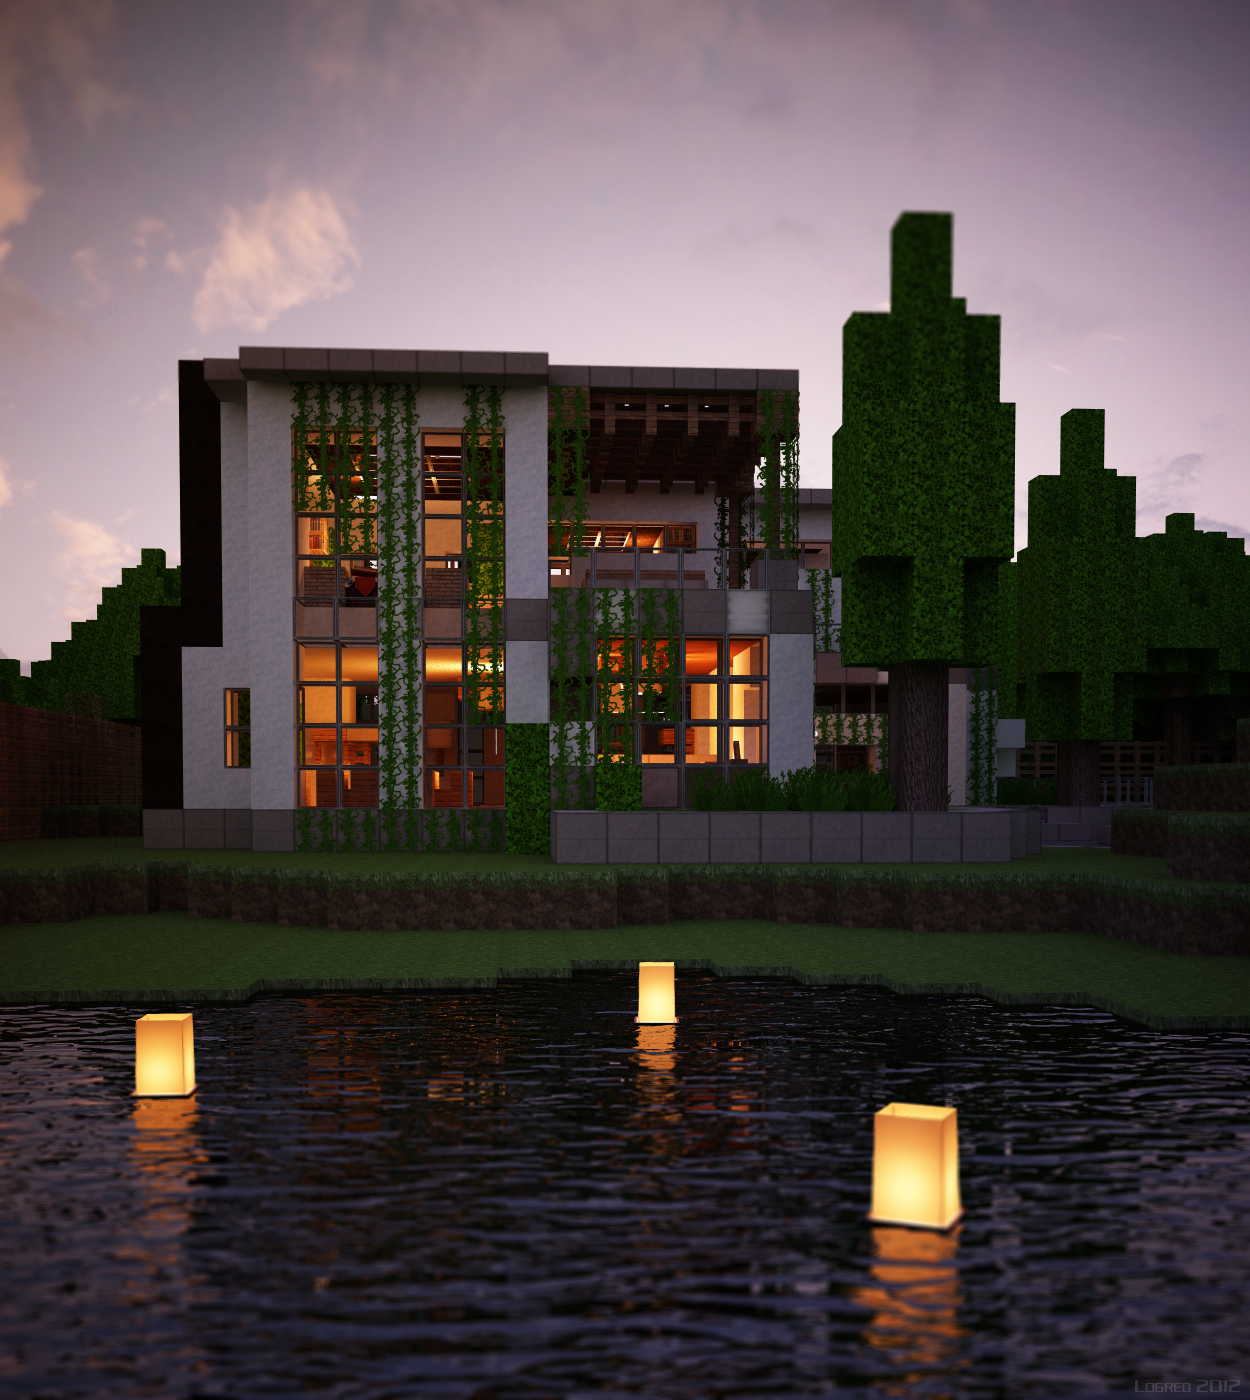 House Ideas Guide For Minecraft: Modern House! I Wish I Could Have This In Real Life